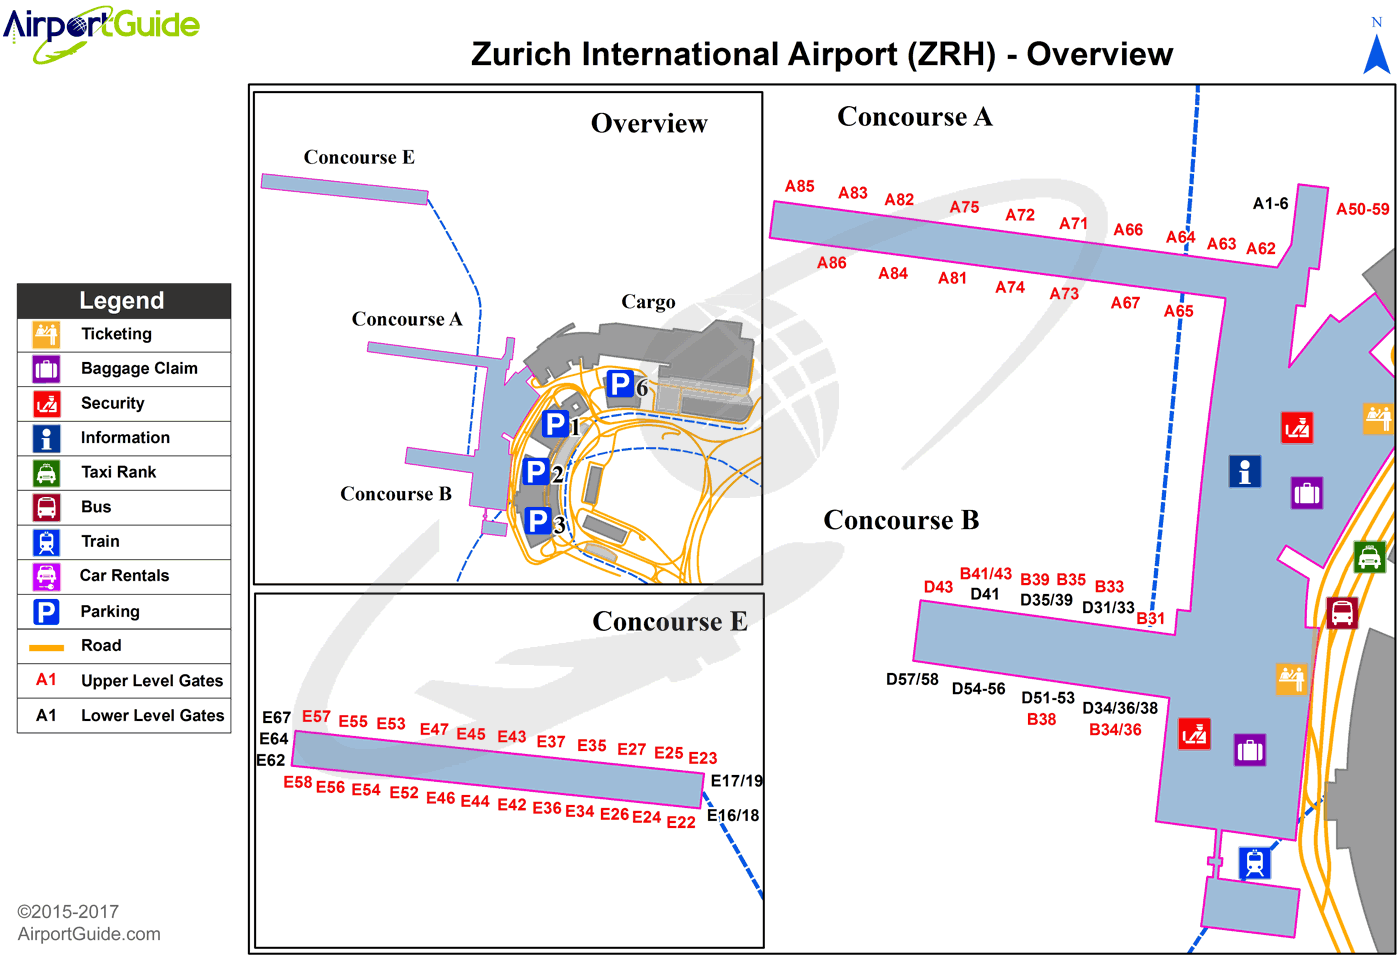 Zurich - Zürich (ZRH) Airport Terminal Map - Overview